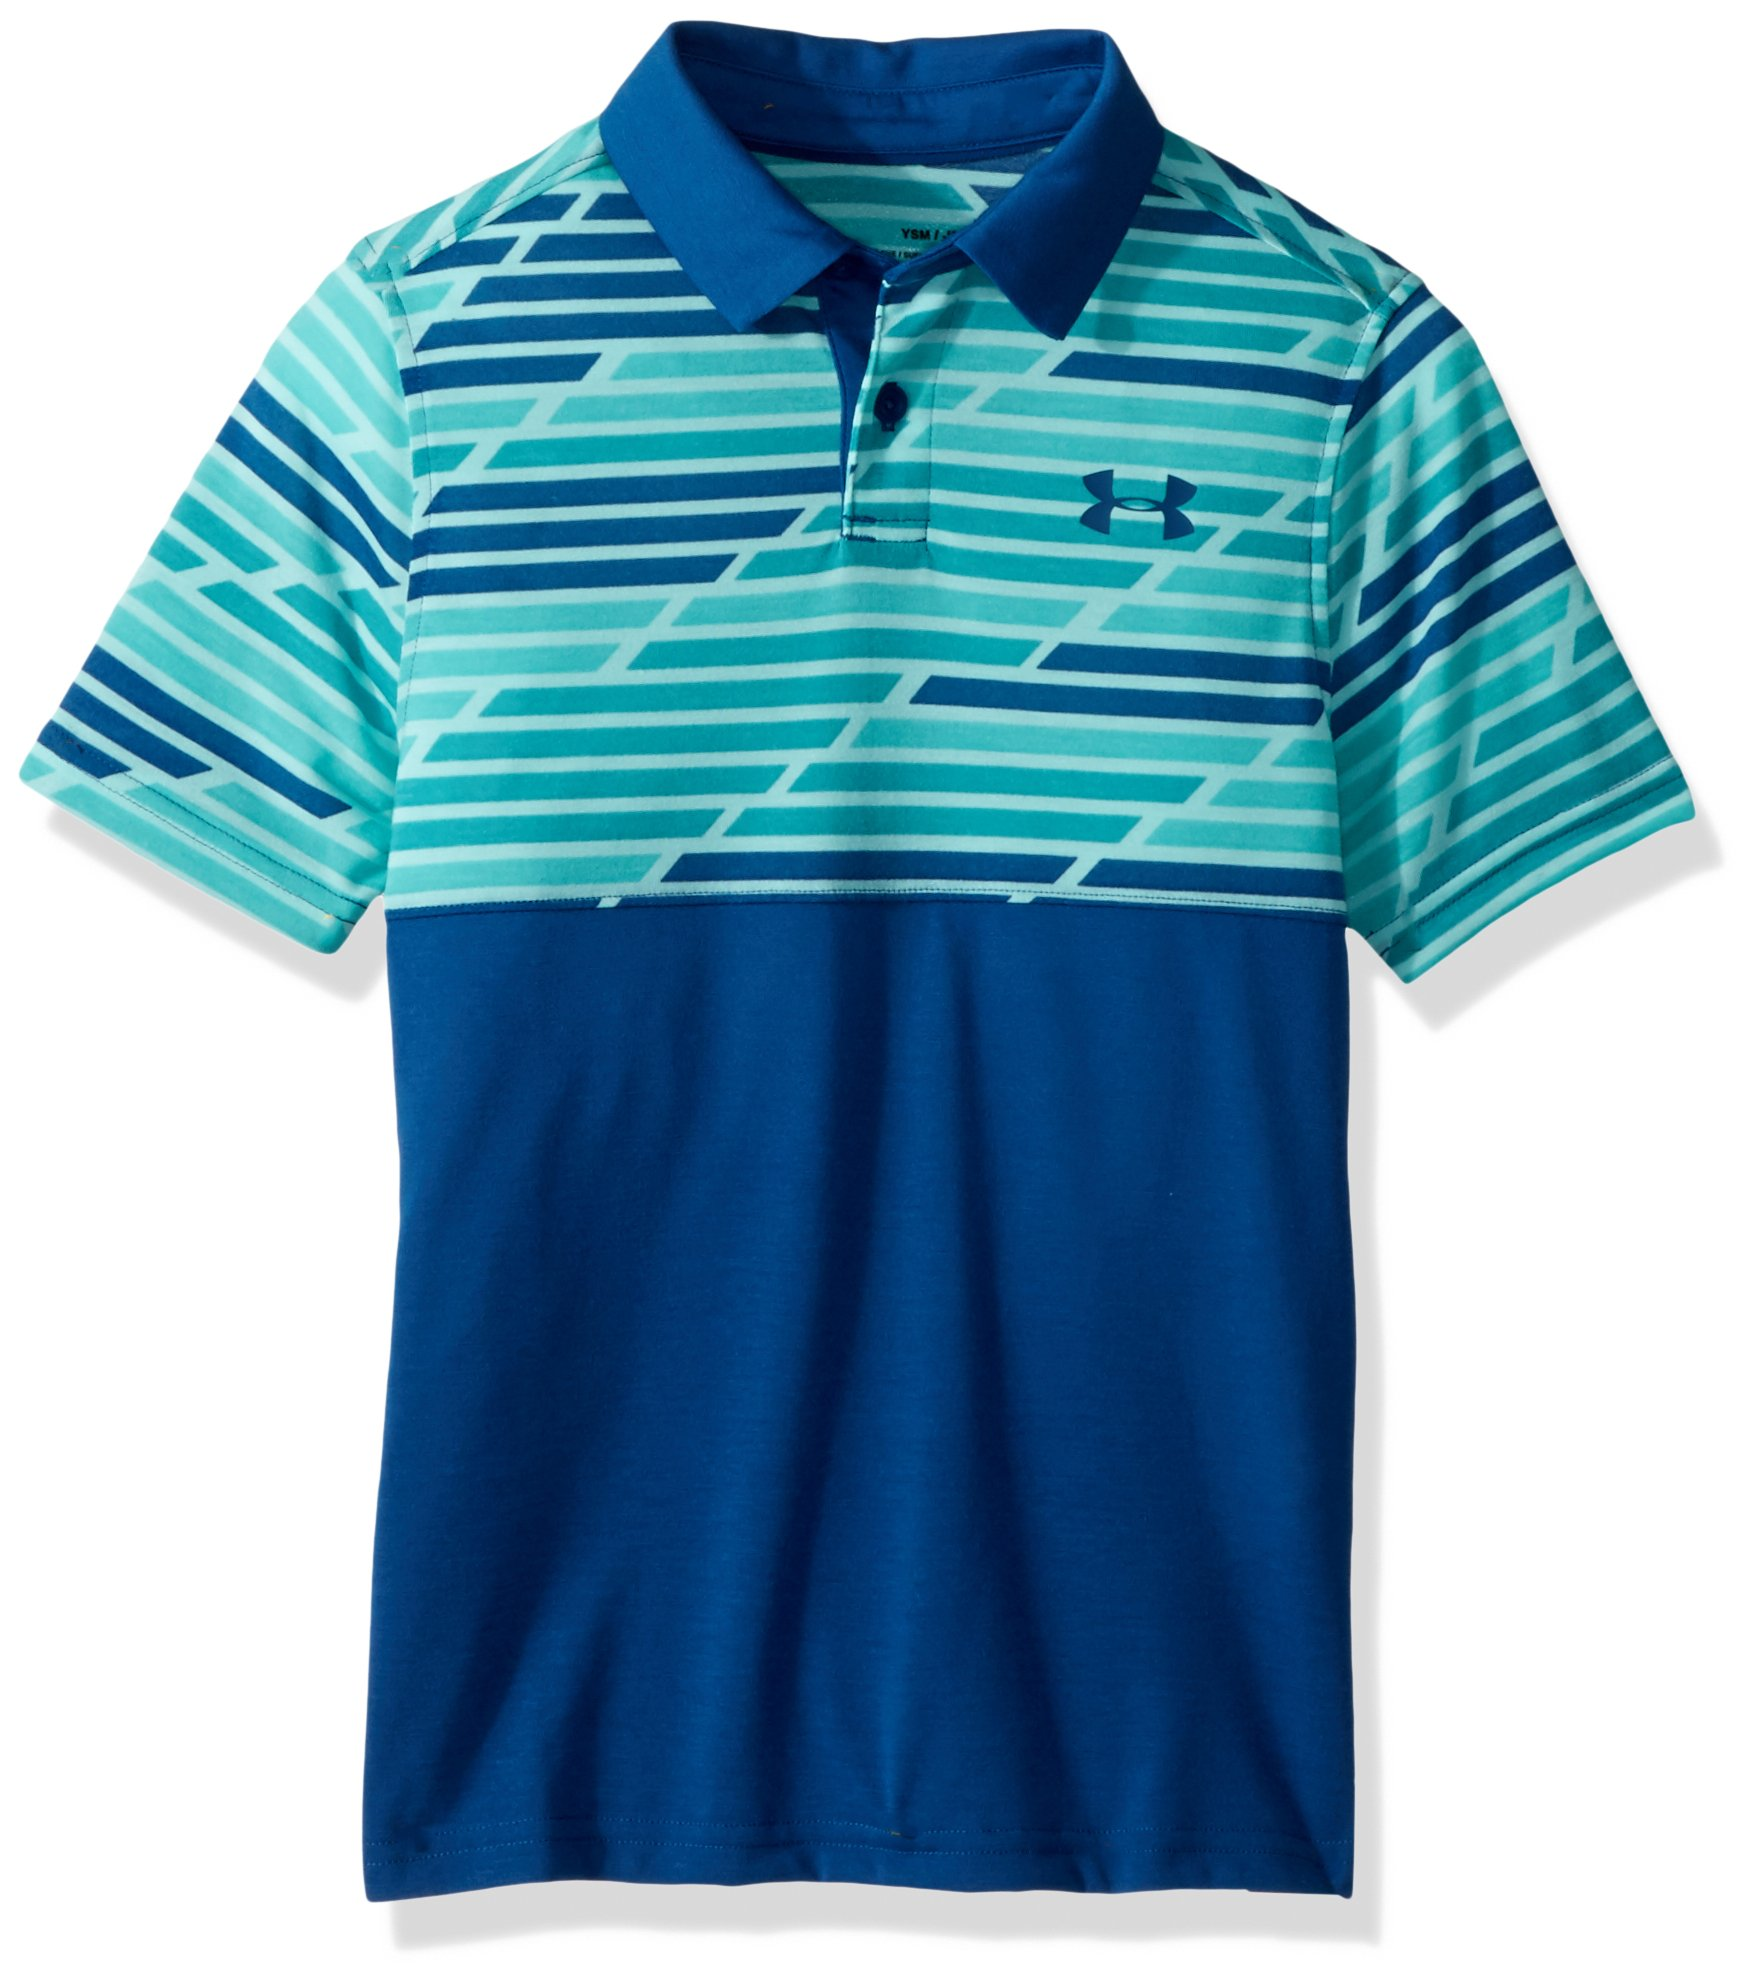 Under Armour Boys Thread borne Blocked Polo Tee, Teal Punch (594)/Moroccan Blue, Youth X-Small